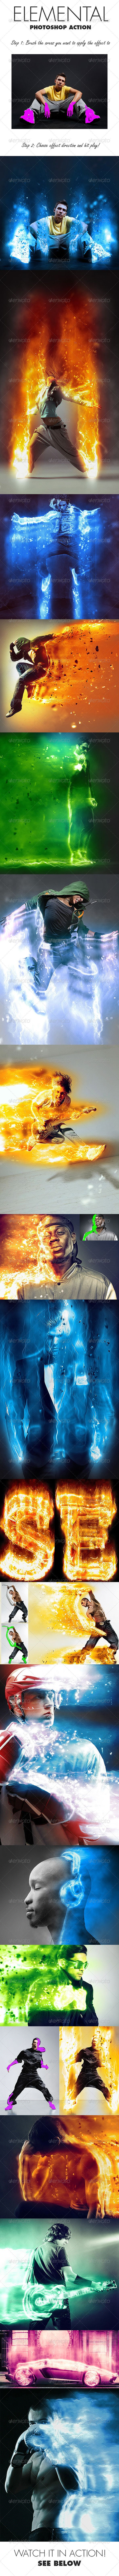 Elemental Photoshop Action. Great for flyer design! A simple to use photoshop action every graphic designer should own! Click on the image to get these stunning actions.